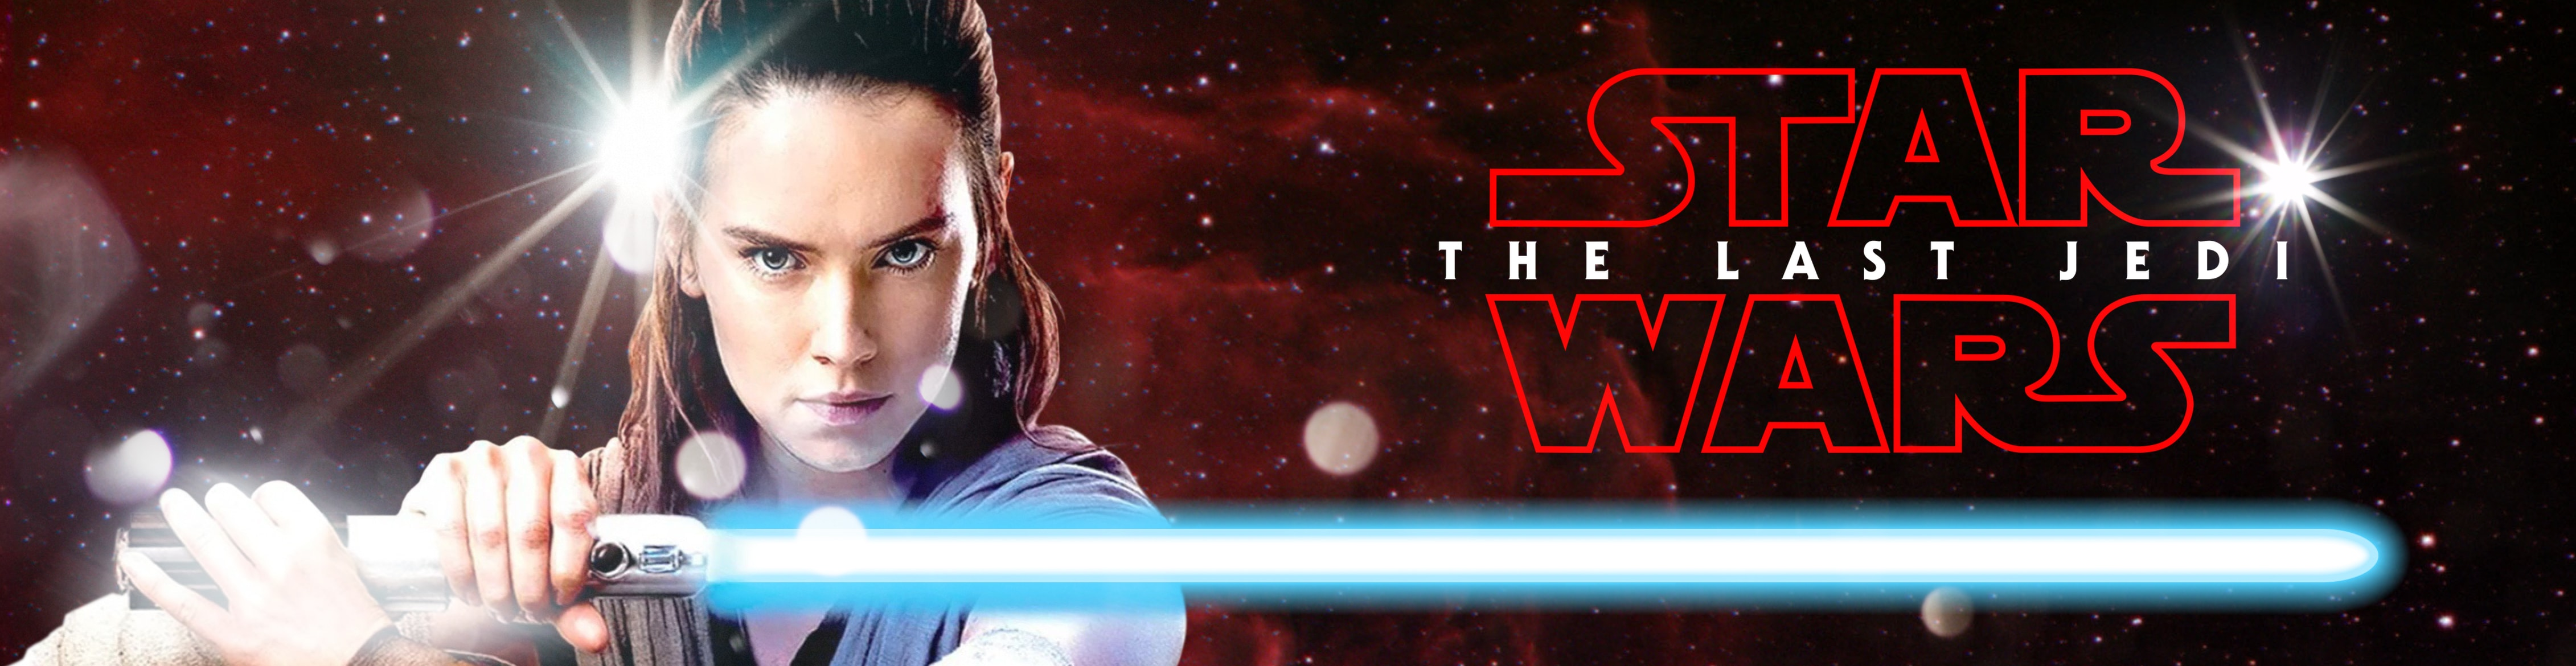 Tickets for Star Wars: The Last Jedi in PIttsburgh from ShowClix